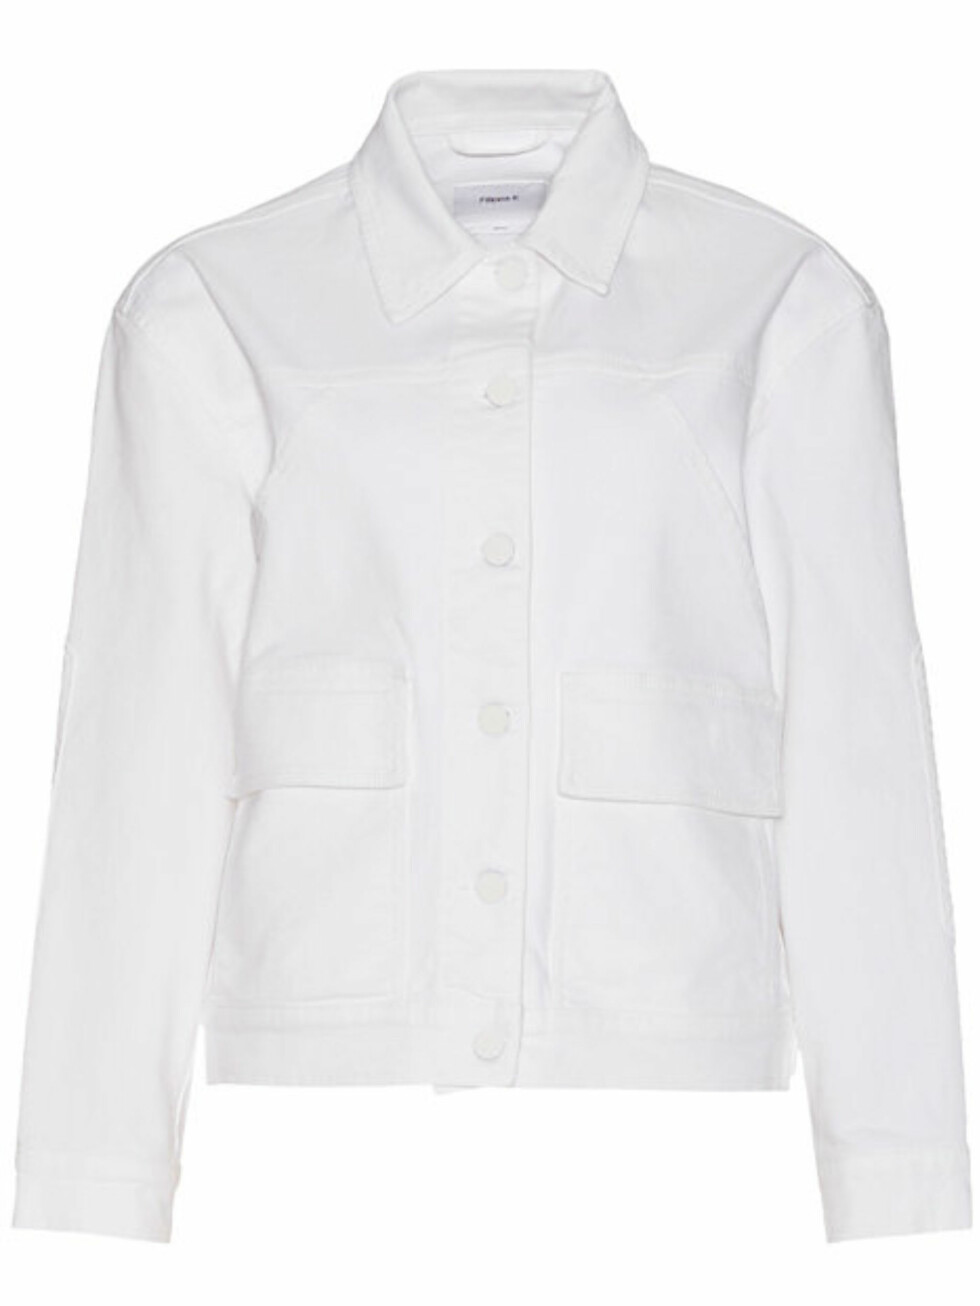 Jakke fra Filippa K via Nelly.com | kr 1350 |  https://my.nelly.com/link/click/25315